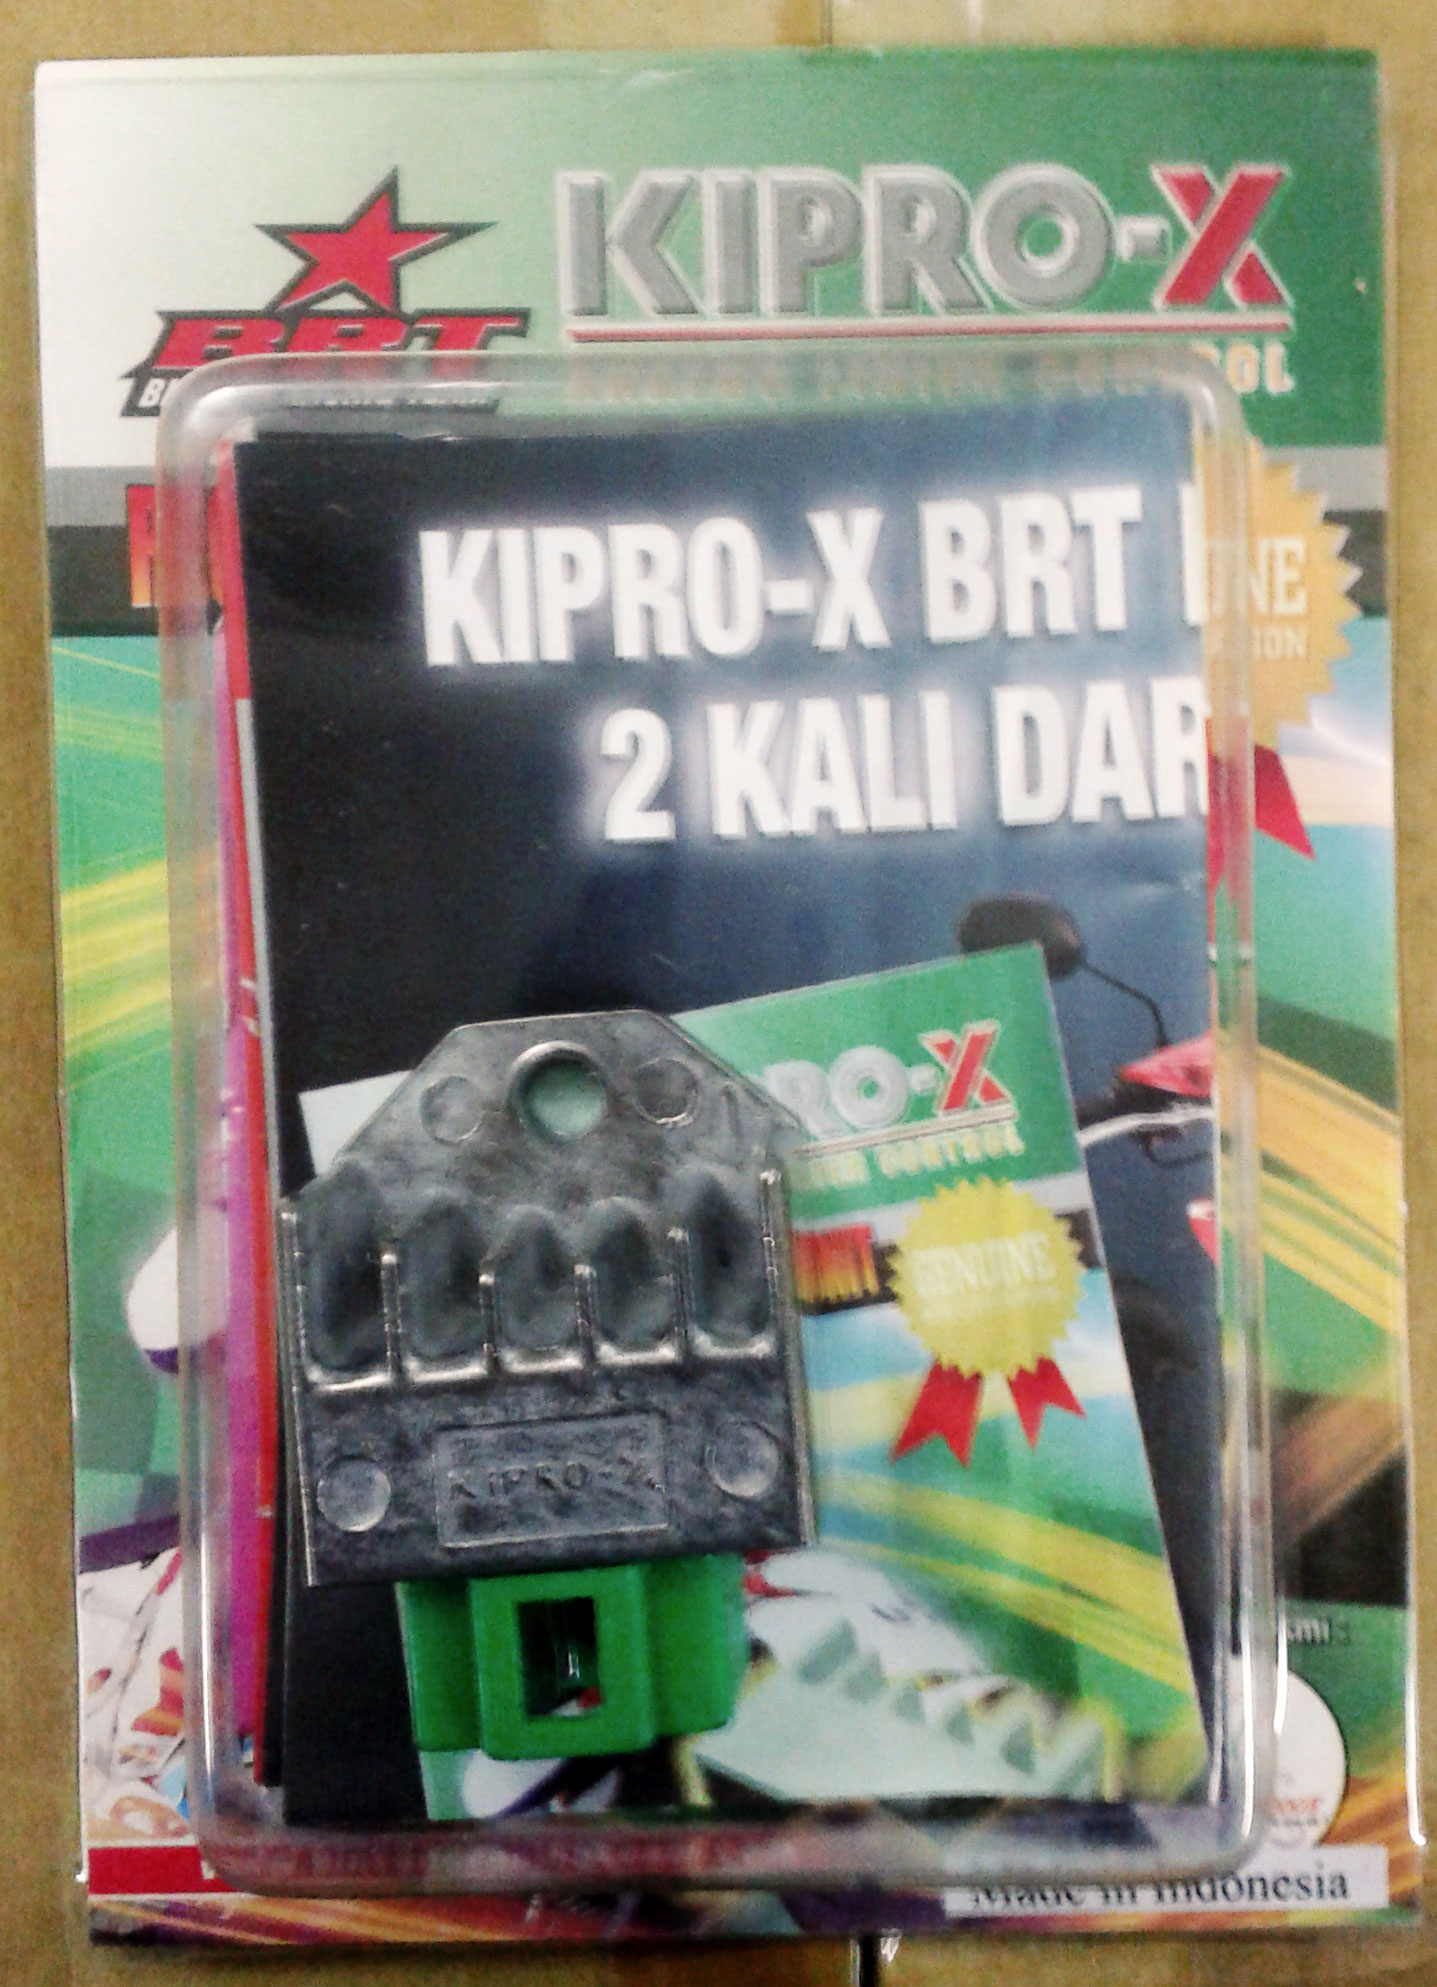 Kiprok Kiprox Rectifier Regulator Brt Cs 1 Cs1 Auto R15 Accessories On Carousell